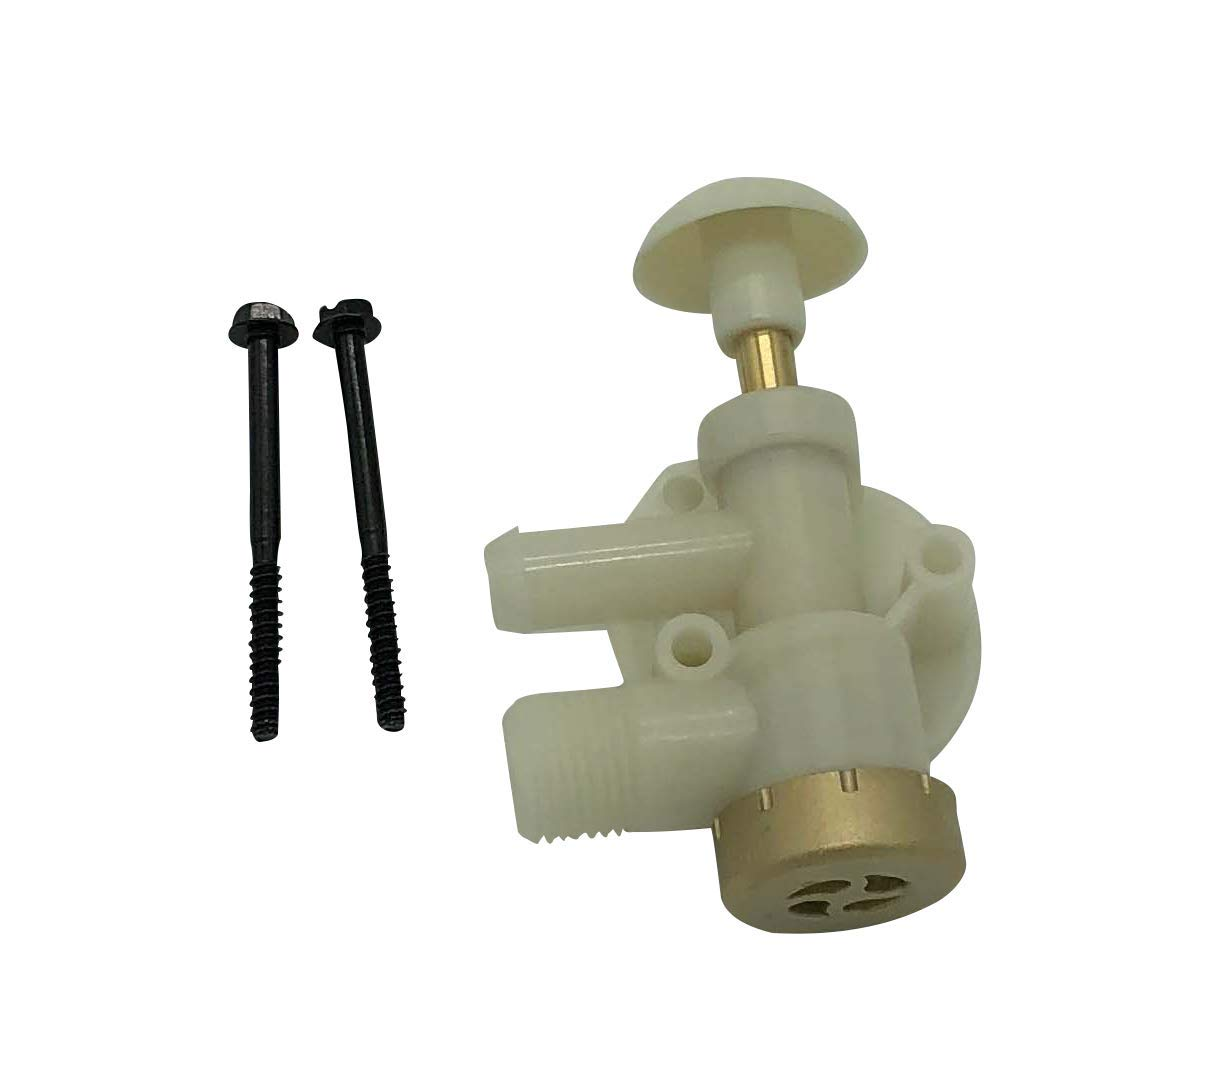 Beech Lane RV Upgraded Toilet Water Valve Assembly 385314349 for Dometic Sealand EcoVac Vacuflush Pedal Flush Toilets, Compare to Dometic 385314349, Leak Free Brass Cap, Works in Freezing Conditions by Beech Lane